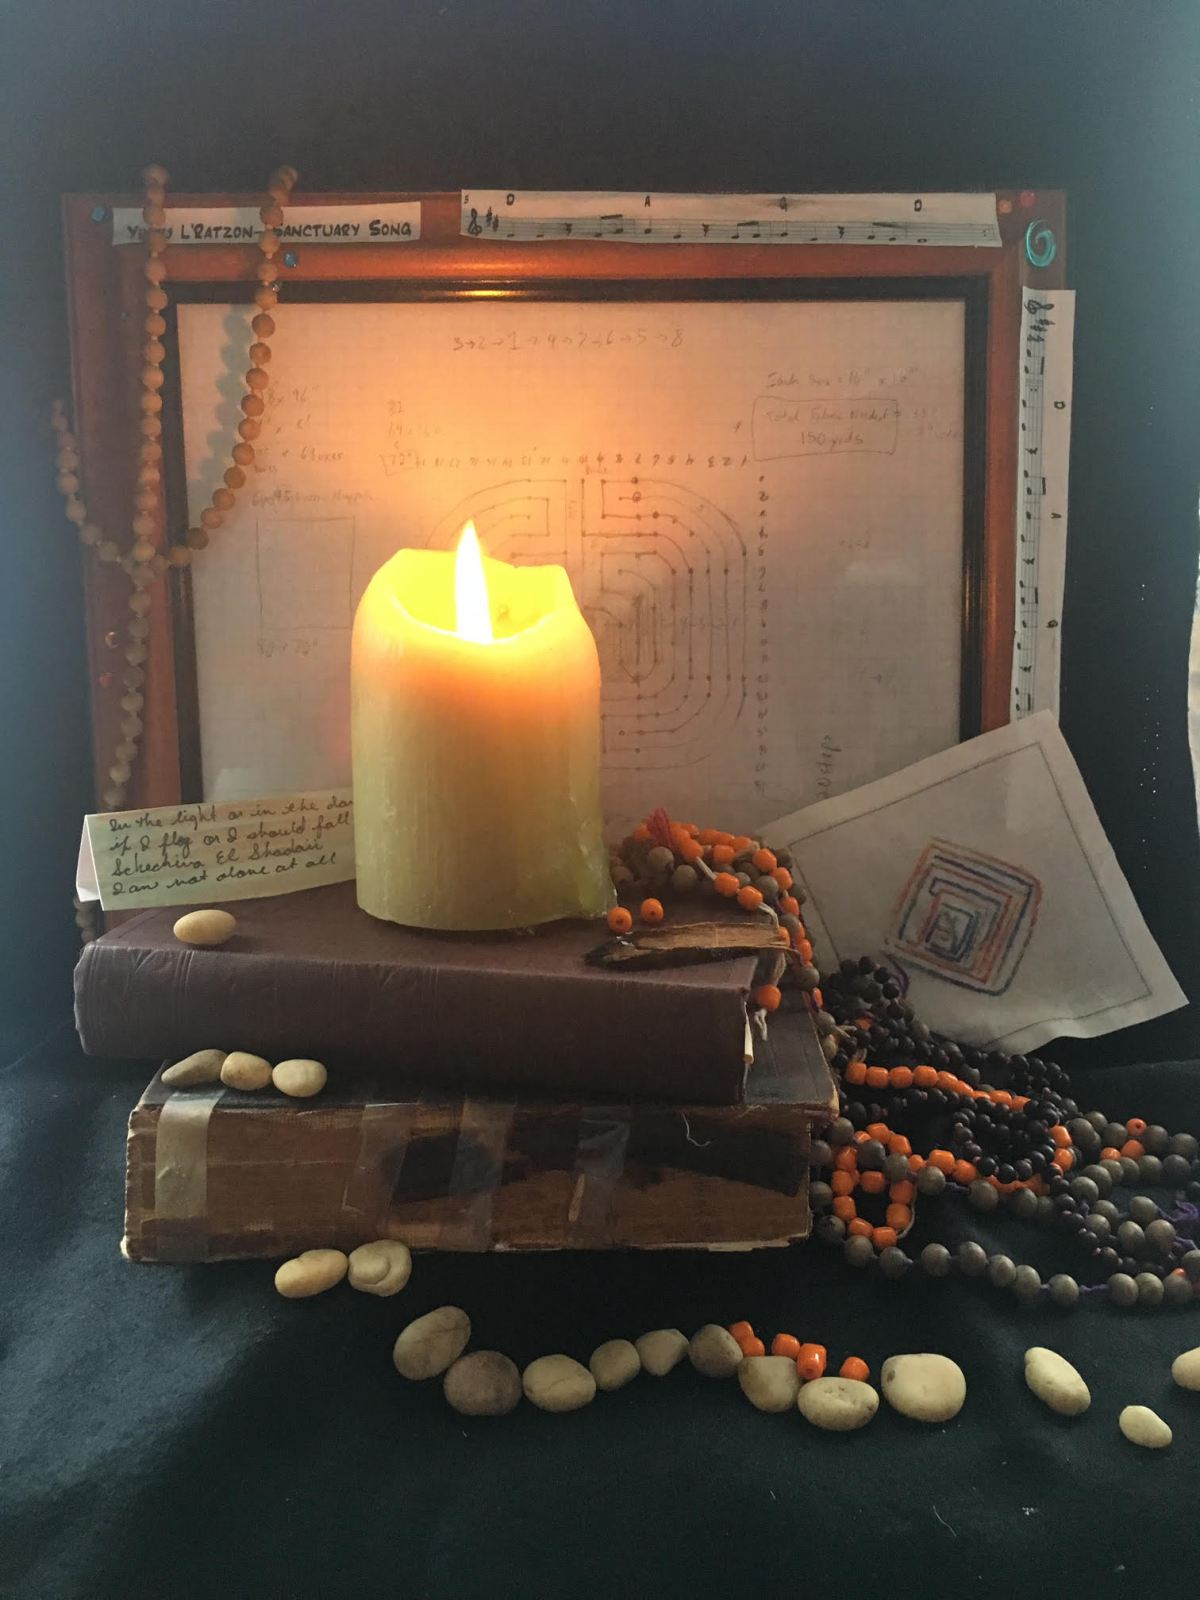 Photo of altar with calendar, hebrew text, mala beads, stones, and hebrew labyrinth